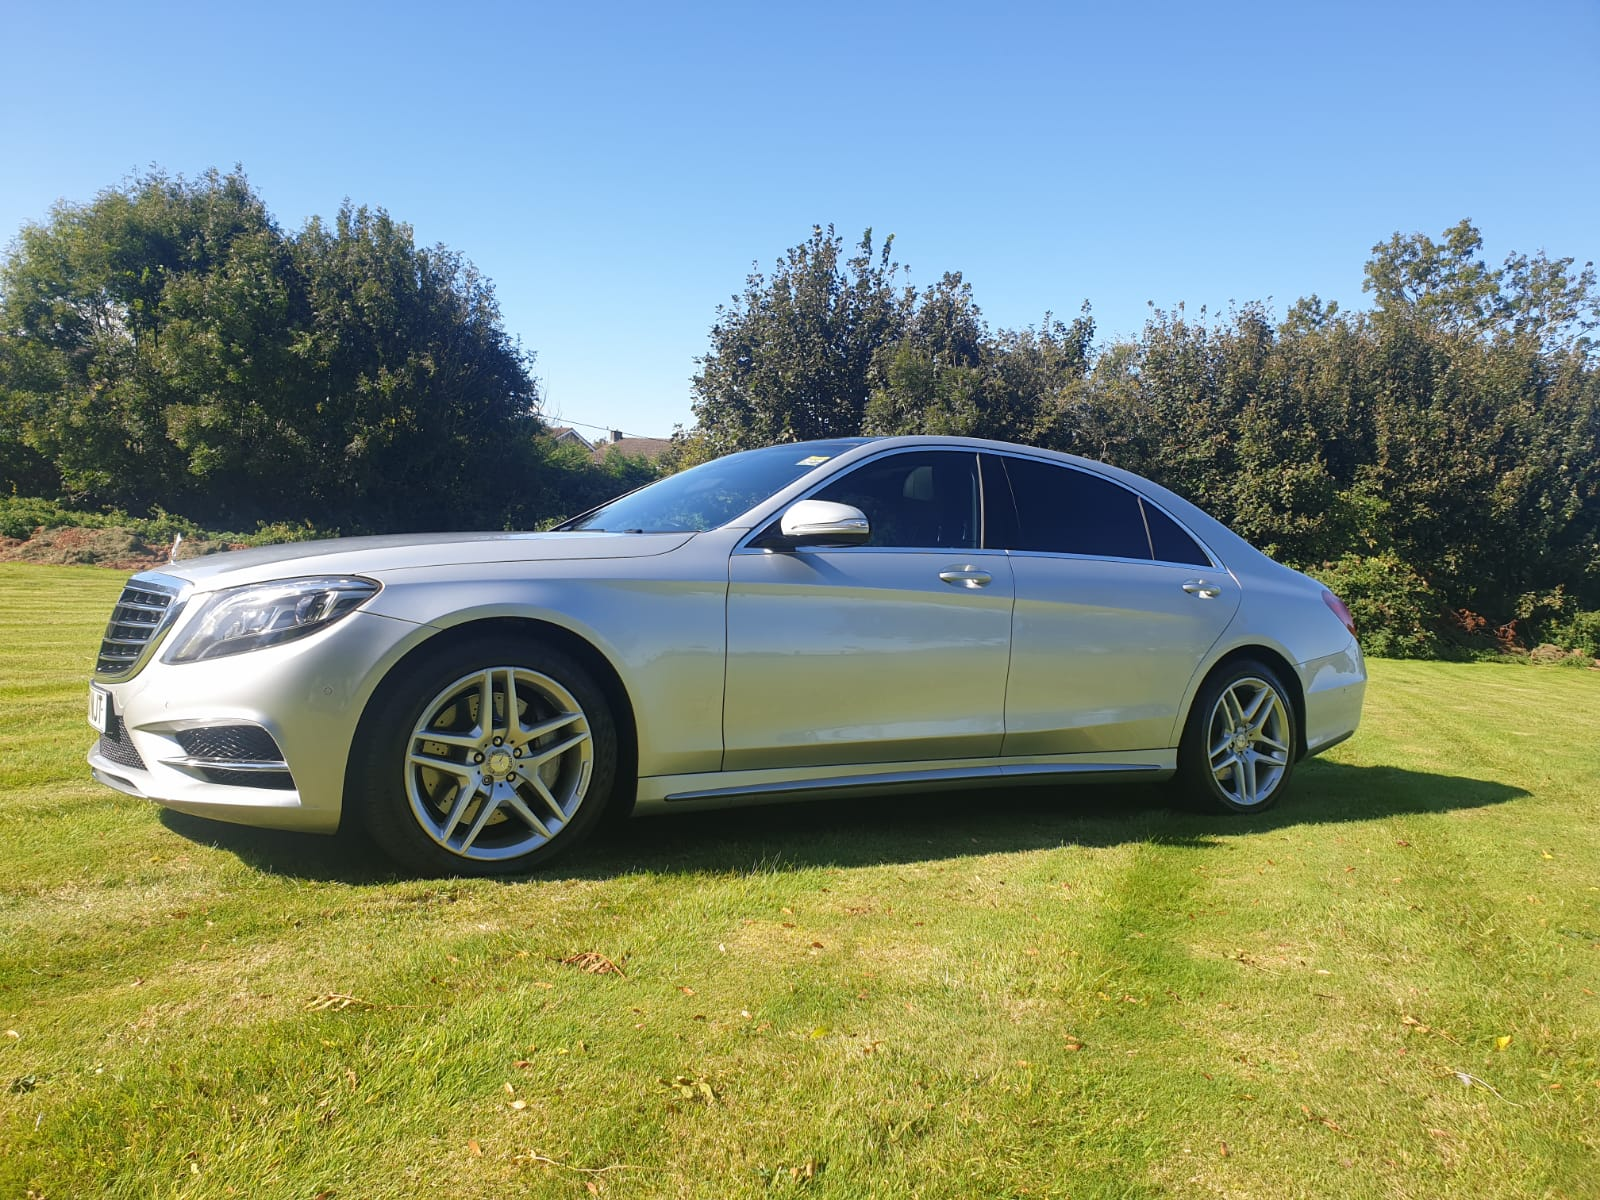 Image of a luxury car to chauffeur up to 3 people. Luxury executive travel in the UK